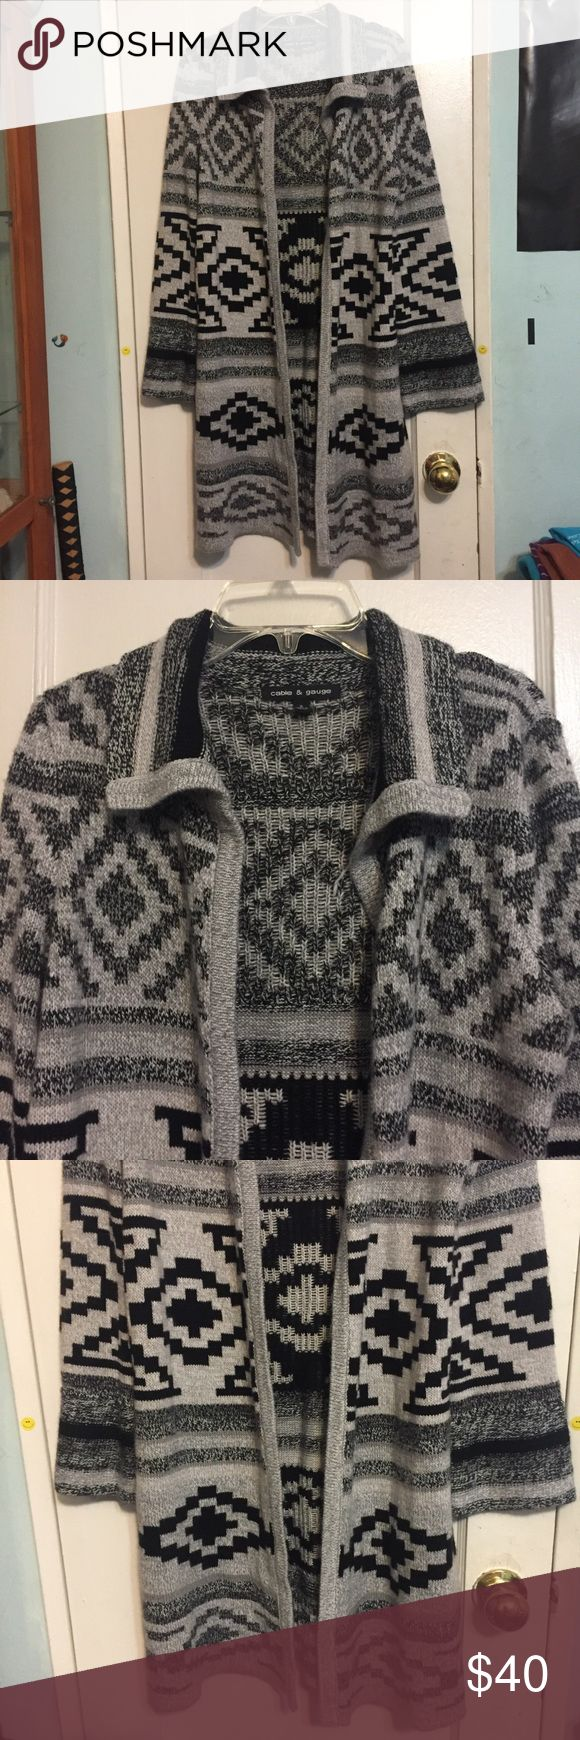 Cable & Gauge Long Aztec Print Cardigan This was only worn once but is in excellent condition. It is a thick material, perfect for fall and winter. Length is 37 in Cable & Gauge Sweaters Cardigans